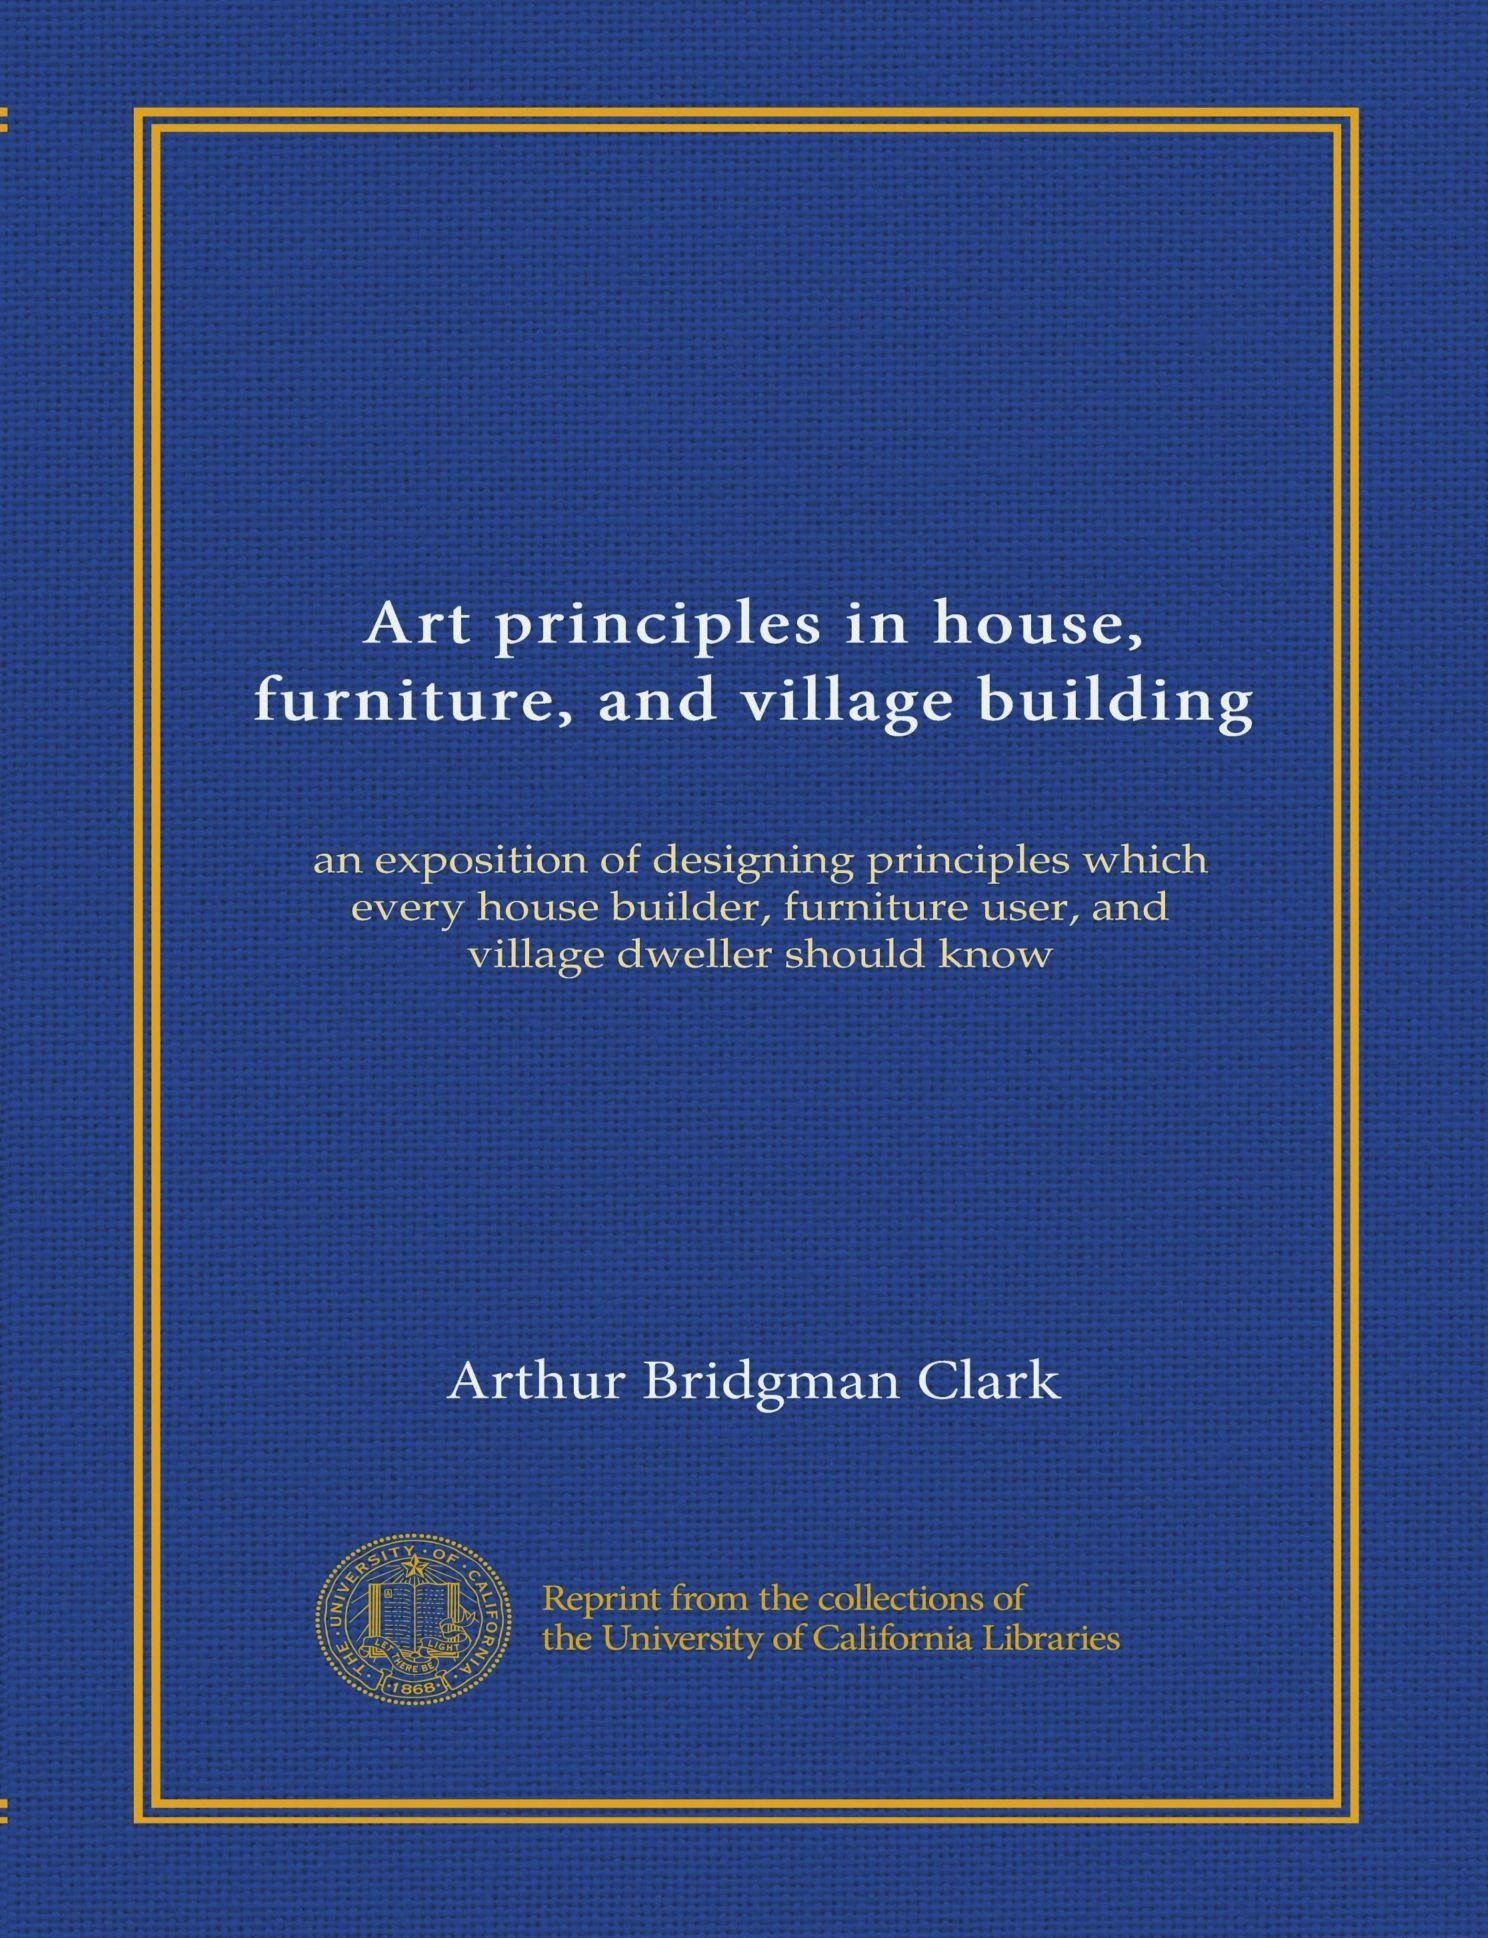 Art principles in house, furniture, and village building: an exposition of designing principles which every house builder, furniture user, and village dweller should know PDF